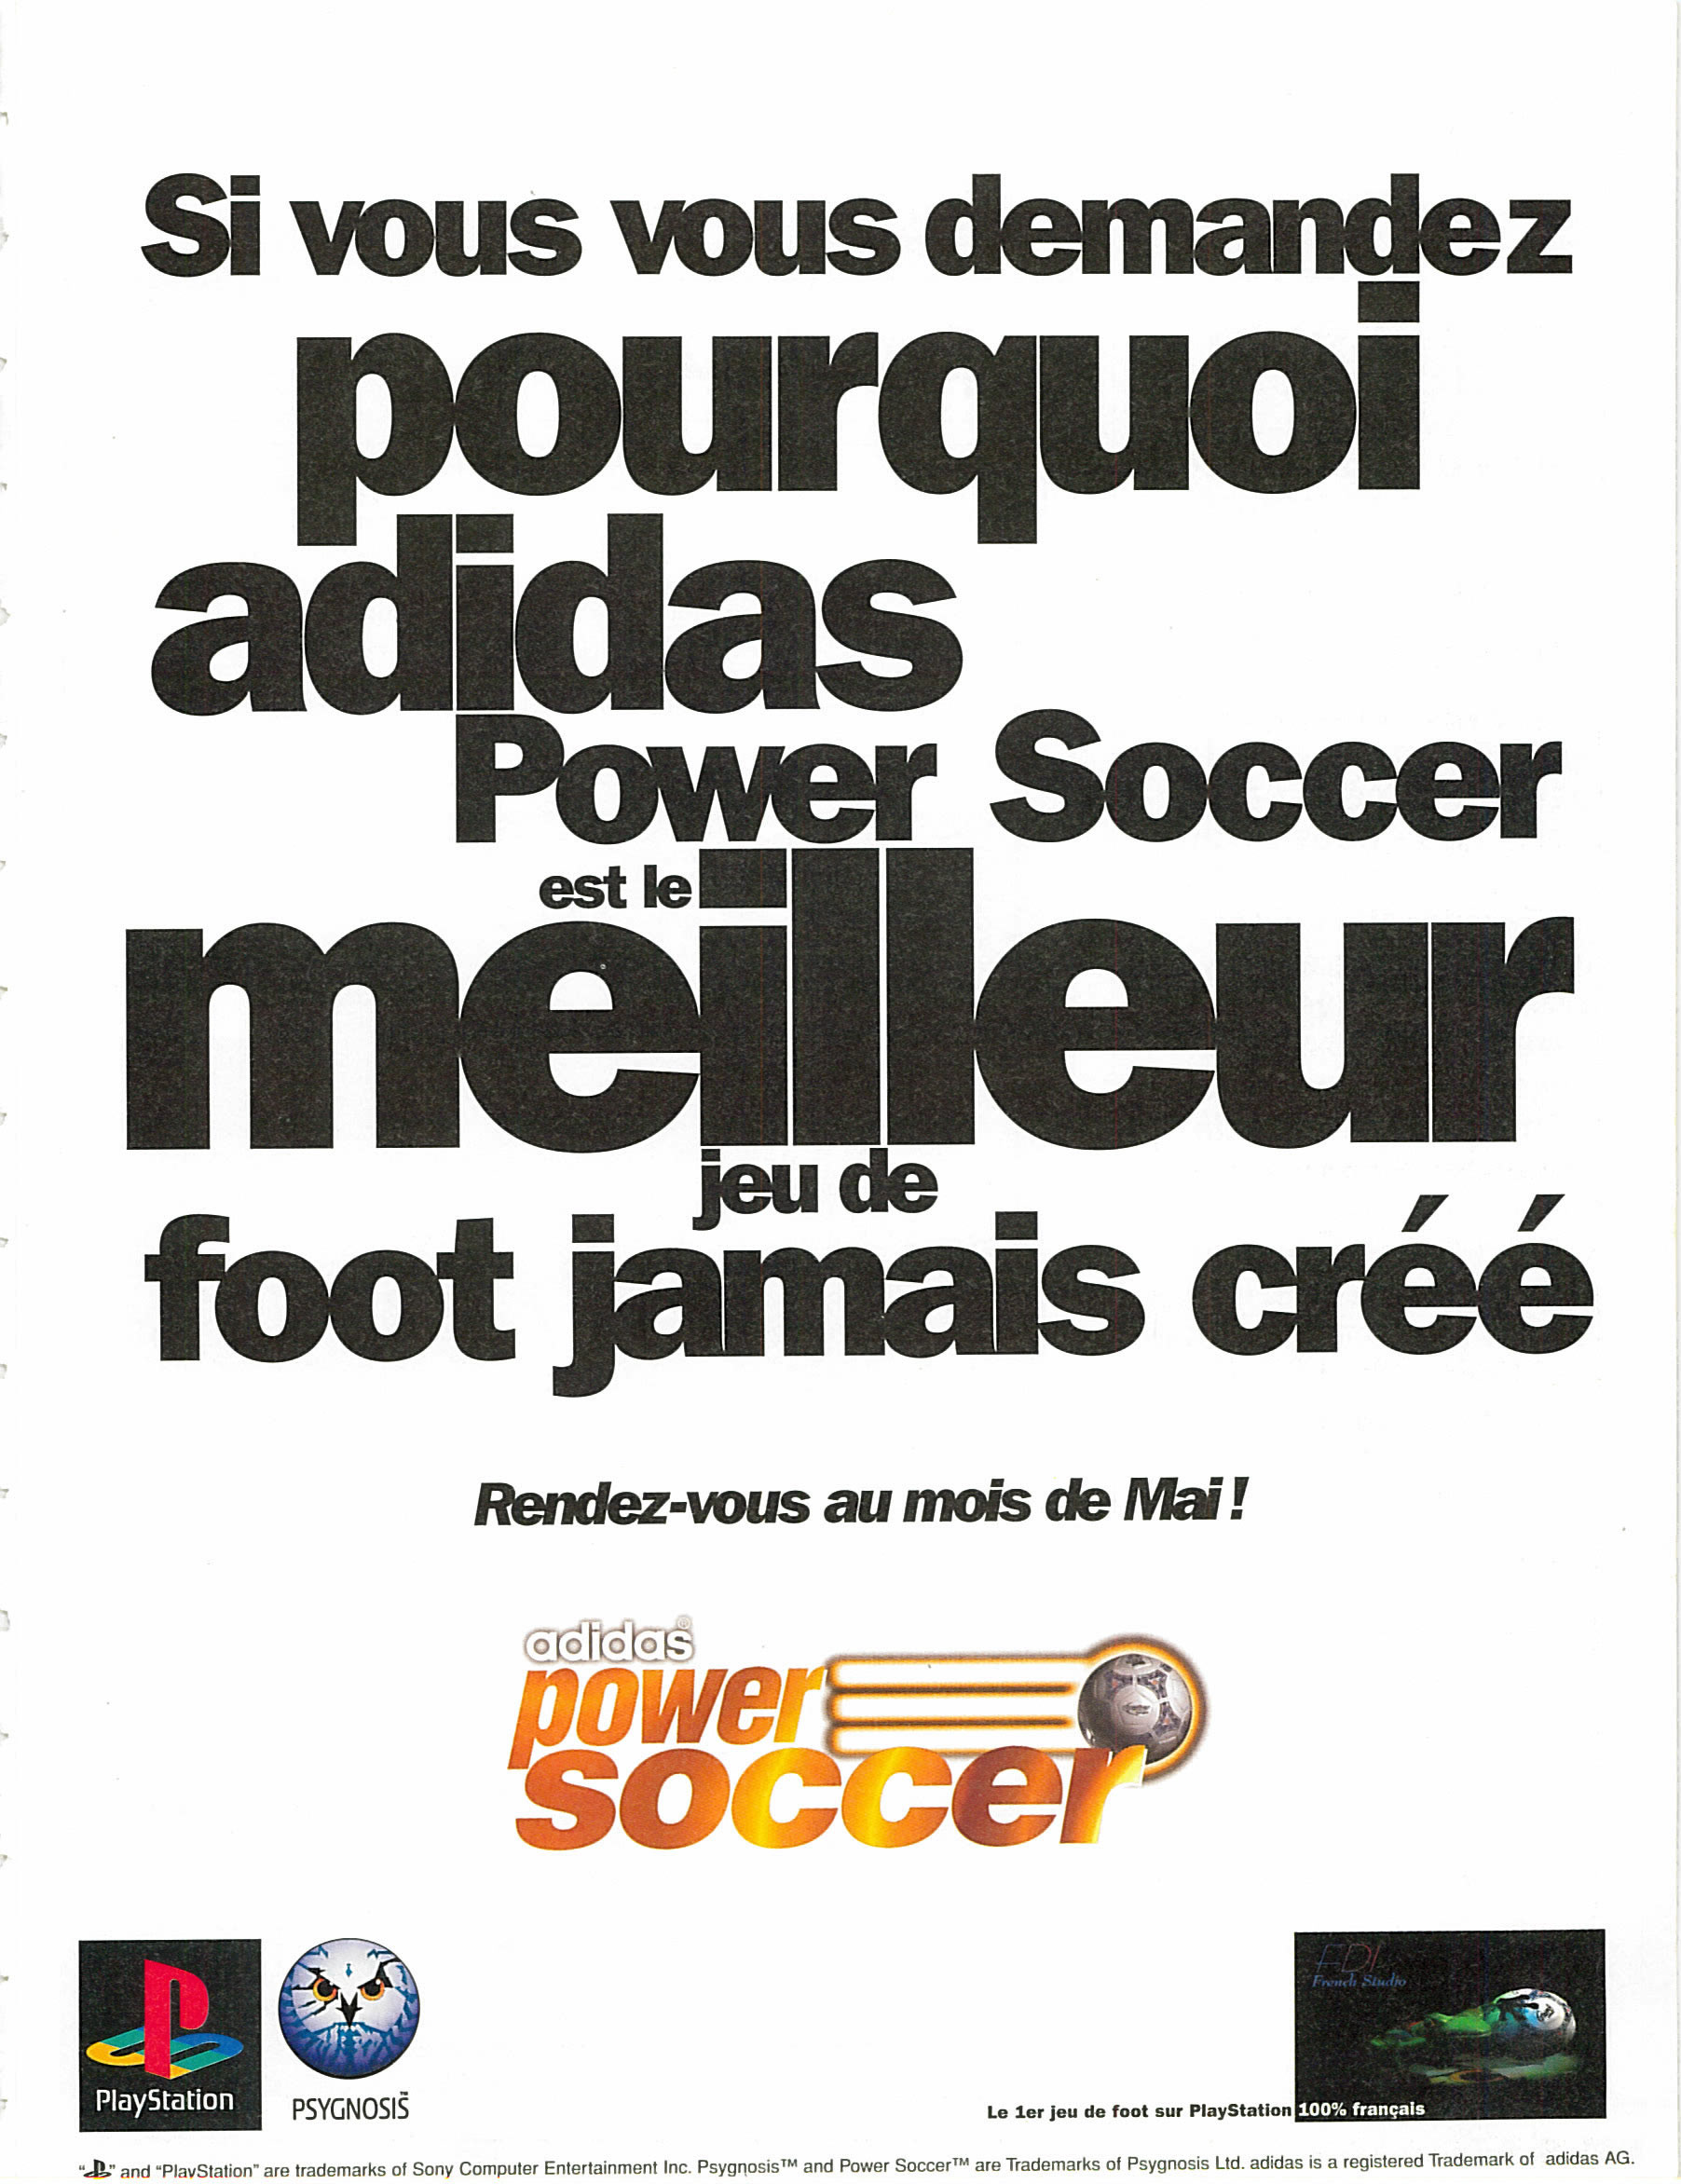 Addidas power soccer Playmag%20002%20-%20Page%20011%20(avril%201996)